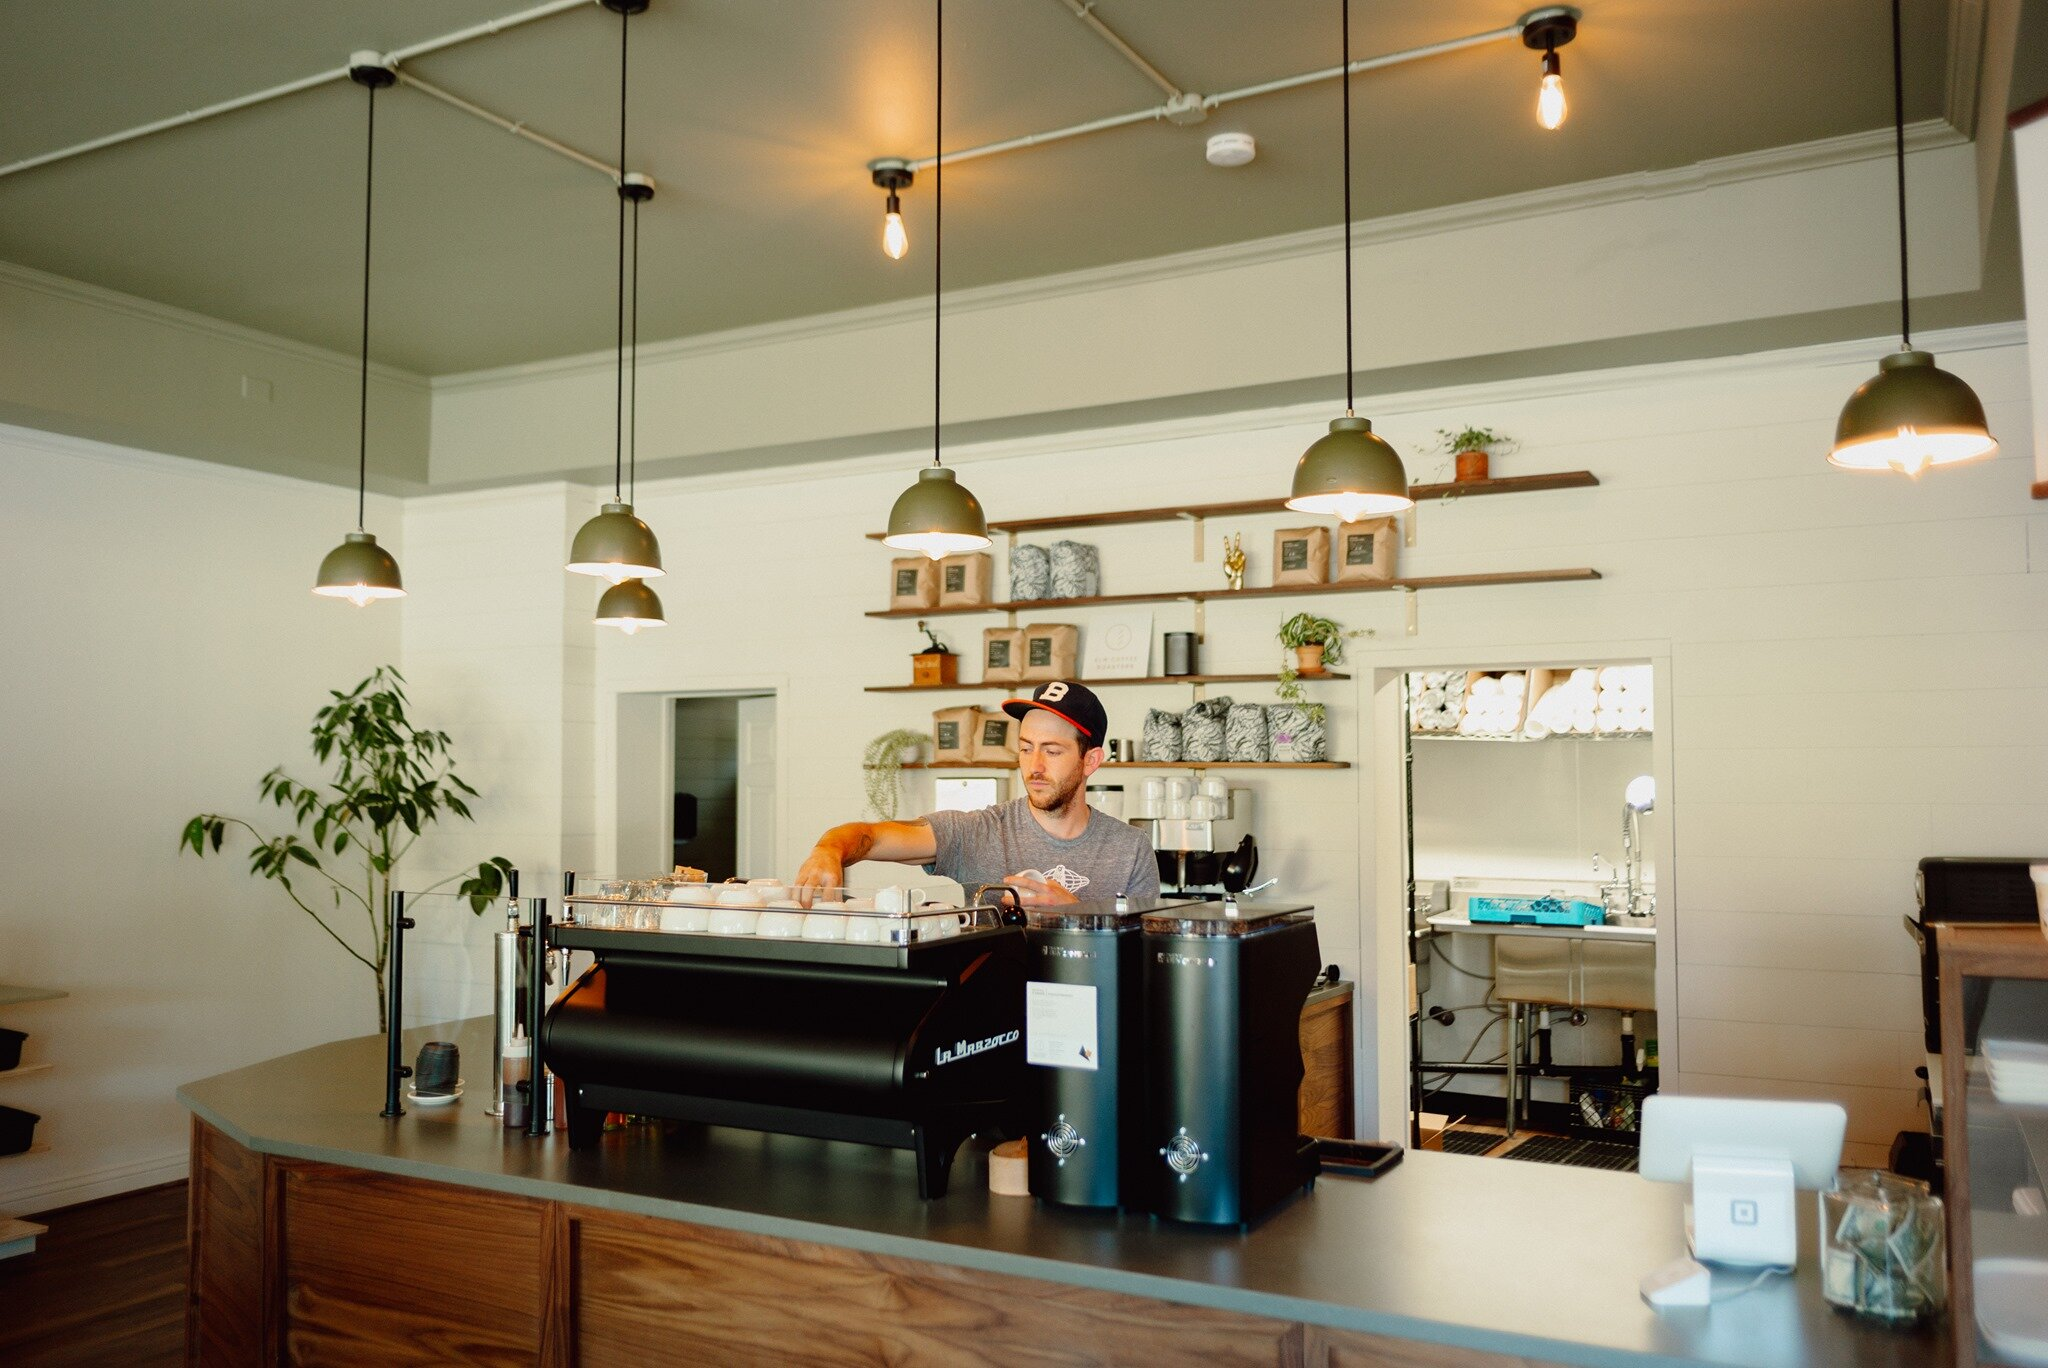 Image from   Lander Coffee  - Just 14 minutes on foot from 824 N M.